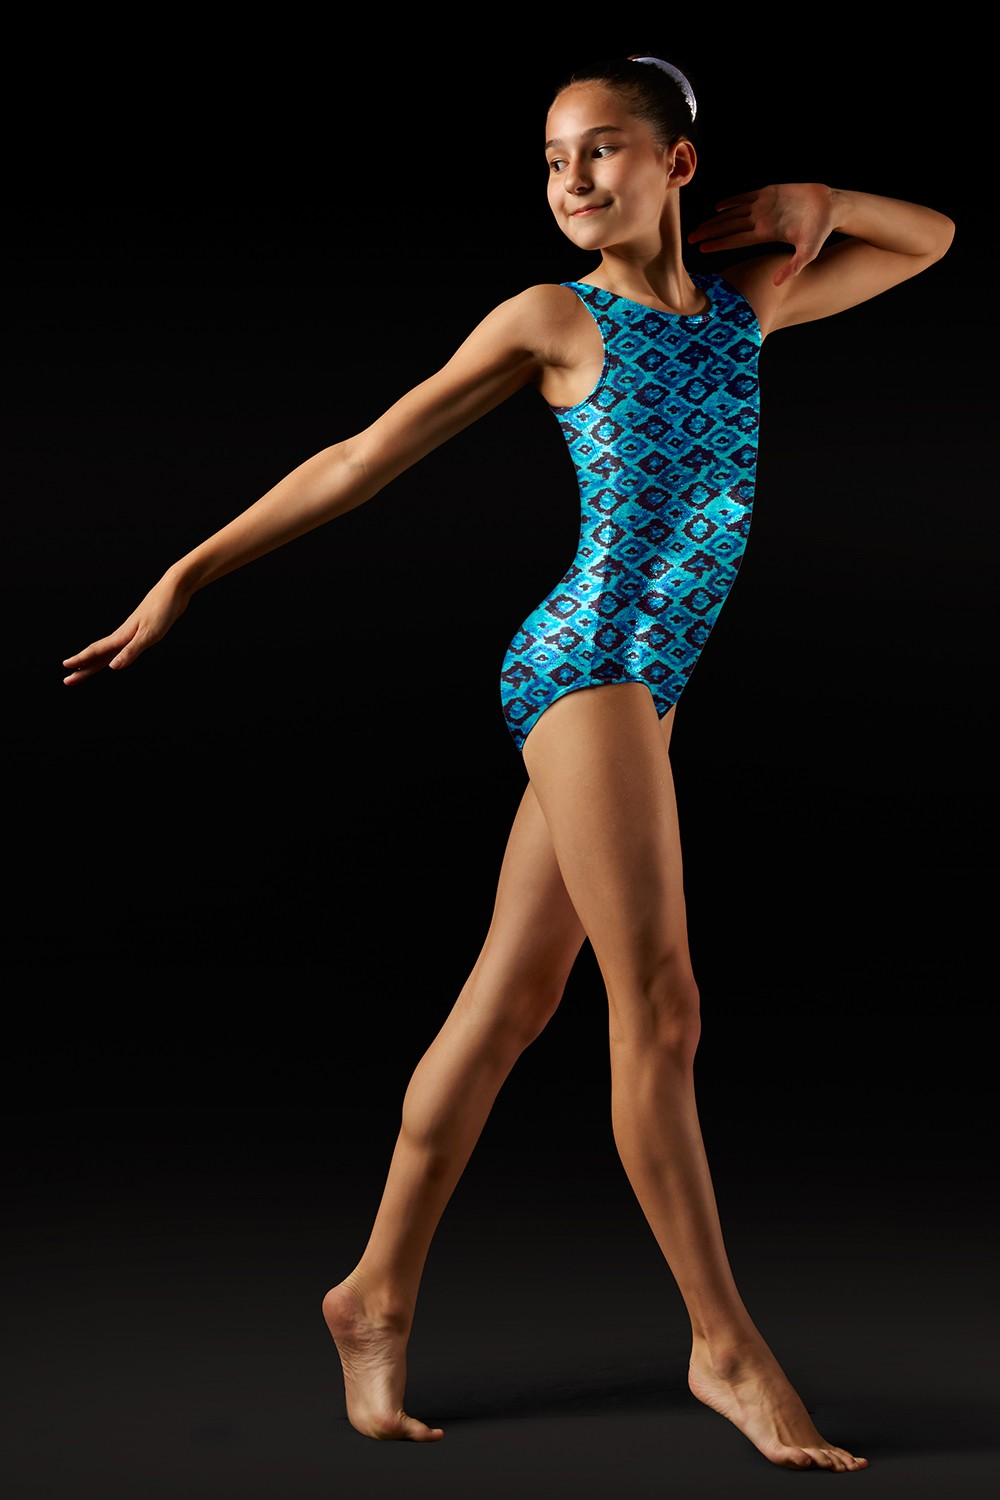 Aztec Print Tank Leotard Women's Gymnastics Leotards